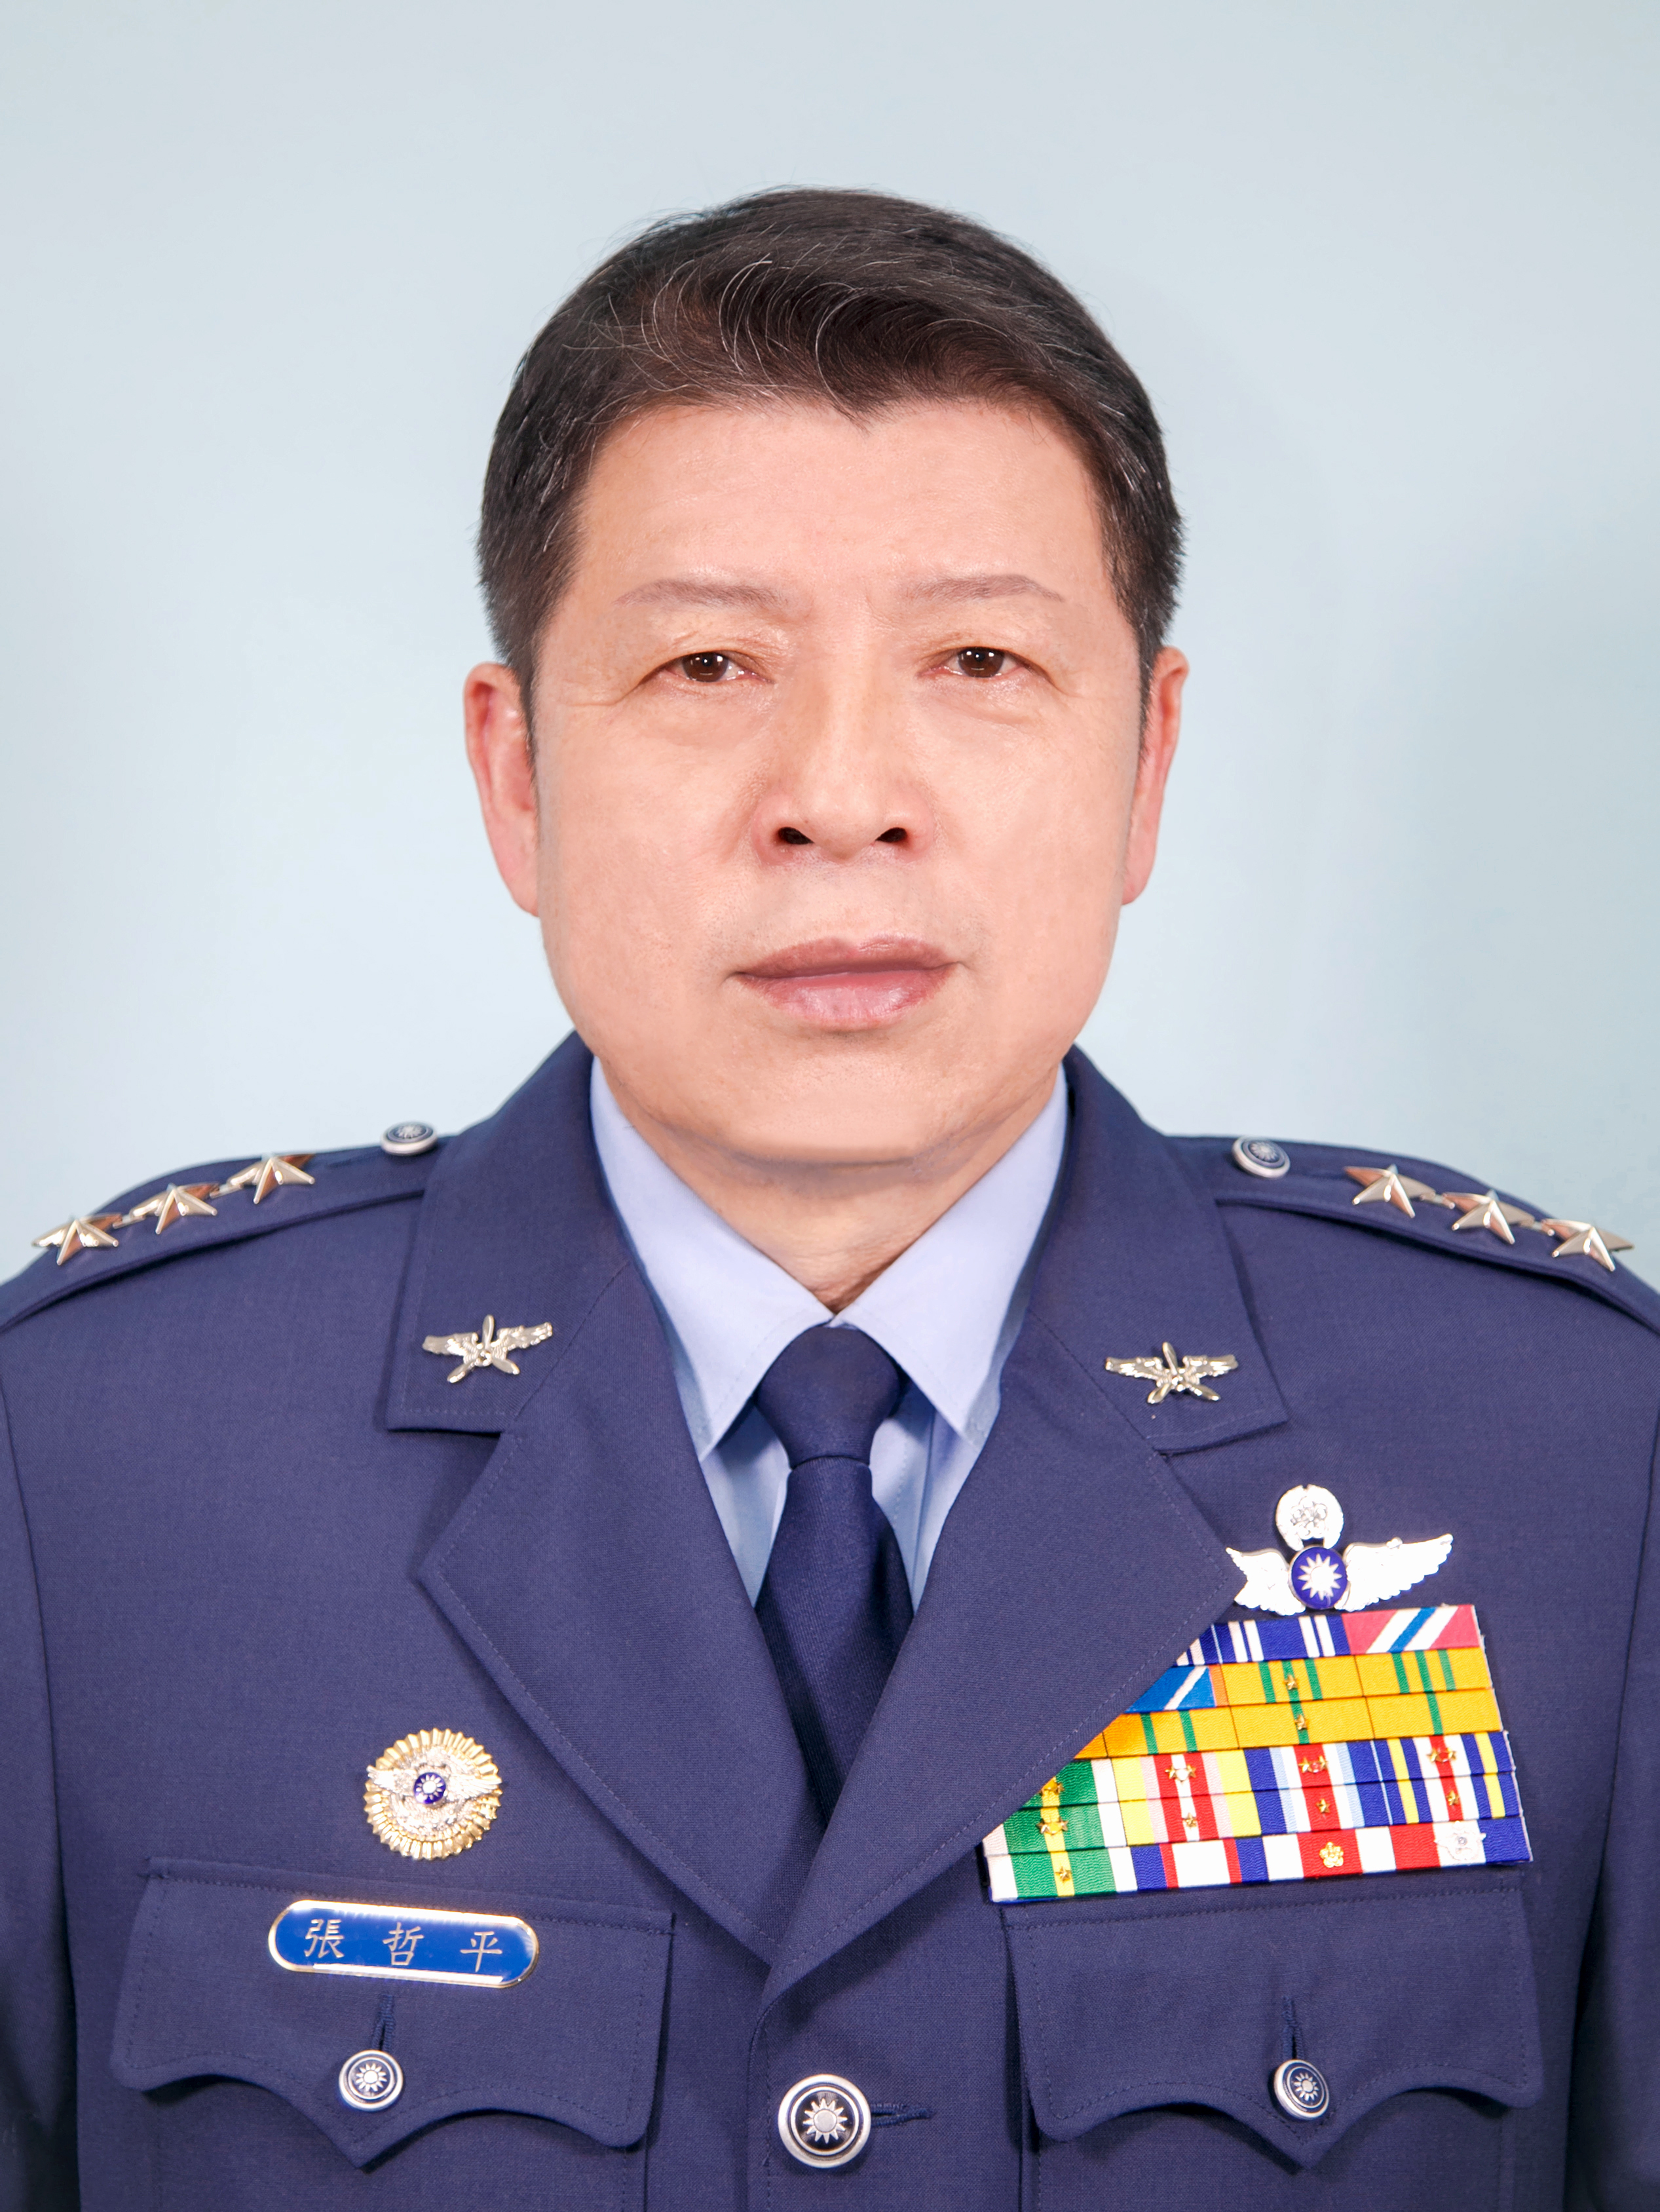 The  General of air command - ZHANG,ZHE-PING